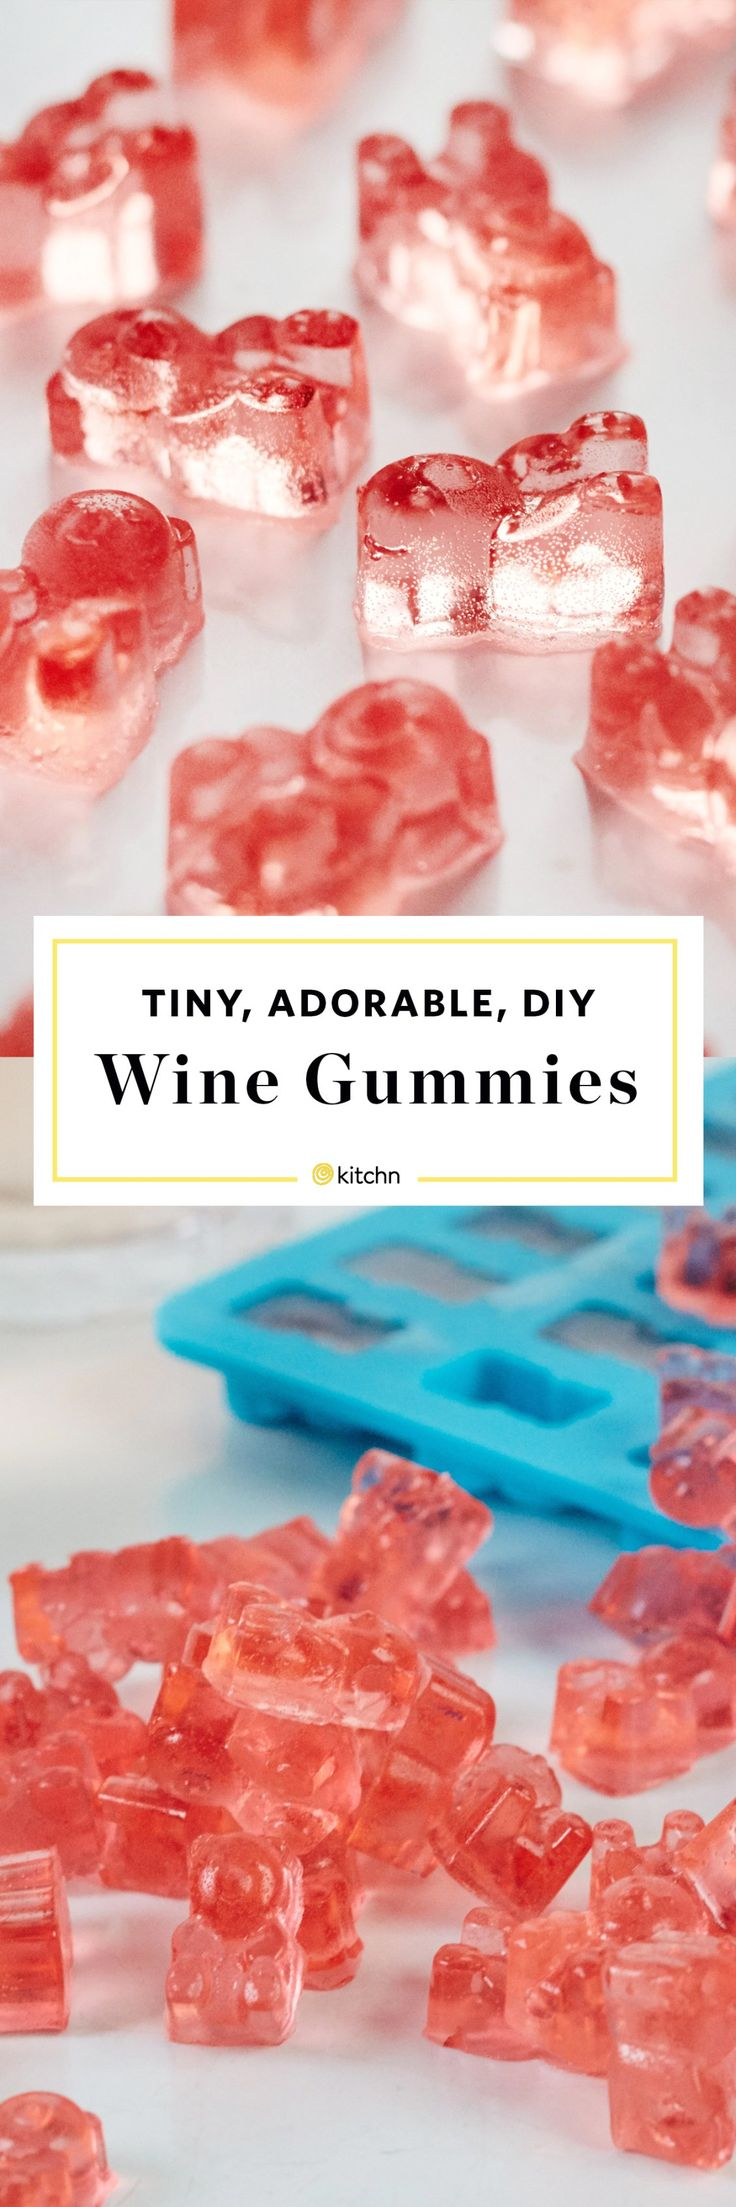 Tiny, Adorable, Homemade DIY Wine Gummies. Use Rose, cabernet, sauvignon blanc, pinot -- whatever you like! Customize this gummy bear recipe with your favorite alcohol as we show you how to make them. Recipes and ideas like this make great gifts or a dessert for valentine's or galentine's day. Easy to make with gelatin, not Jello!